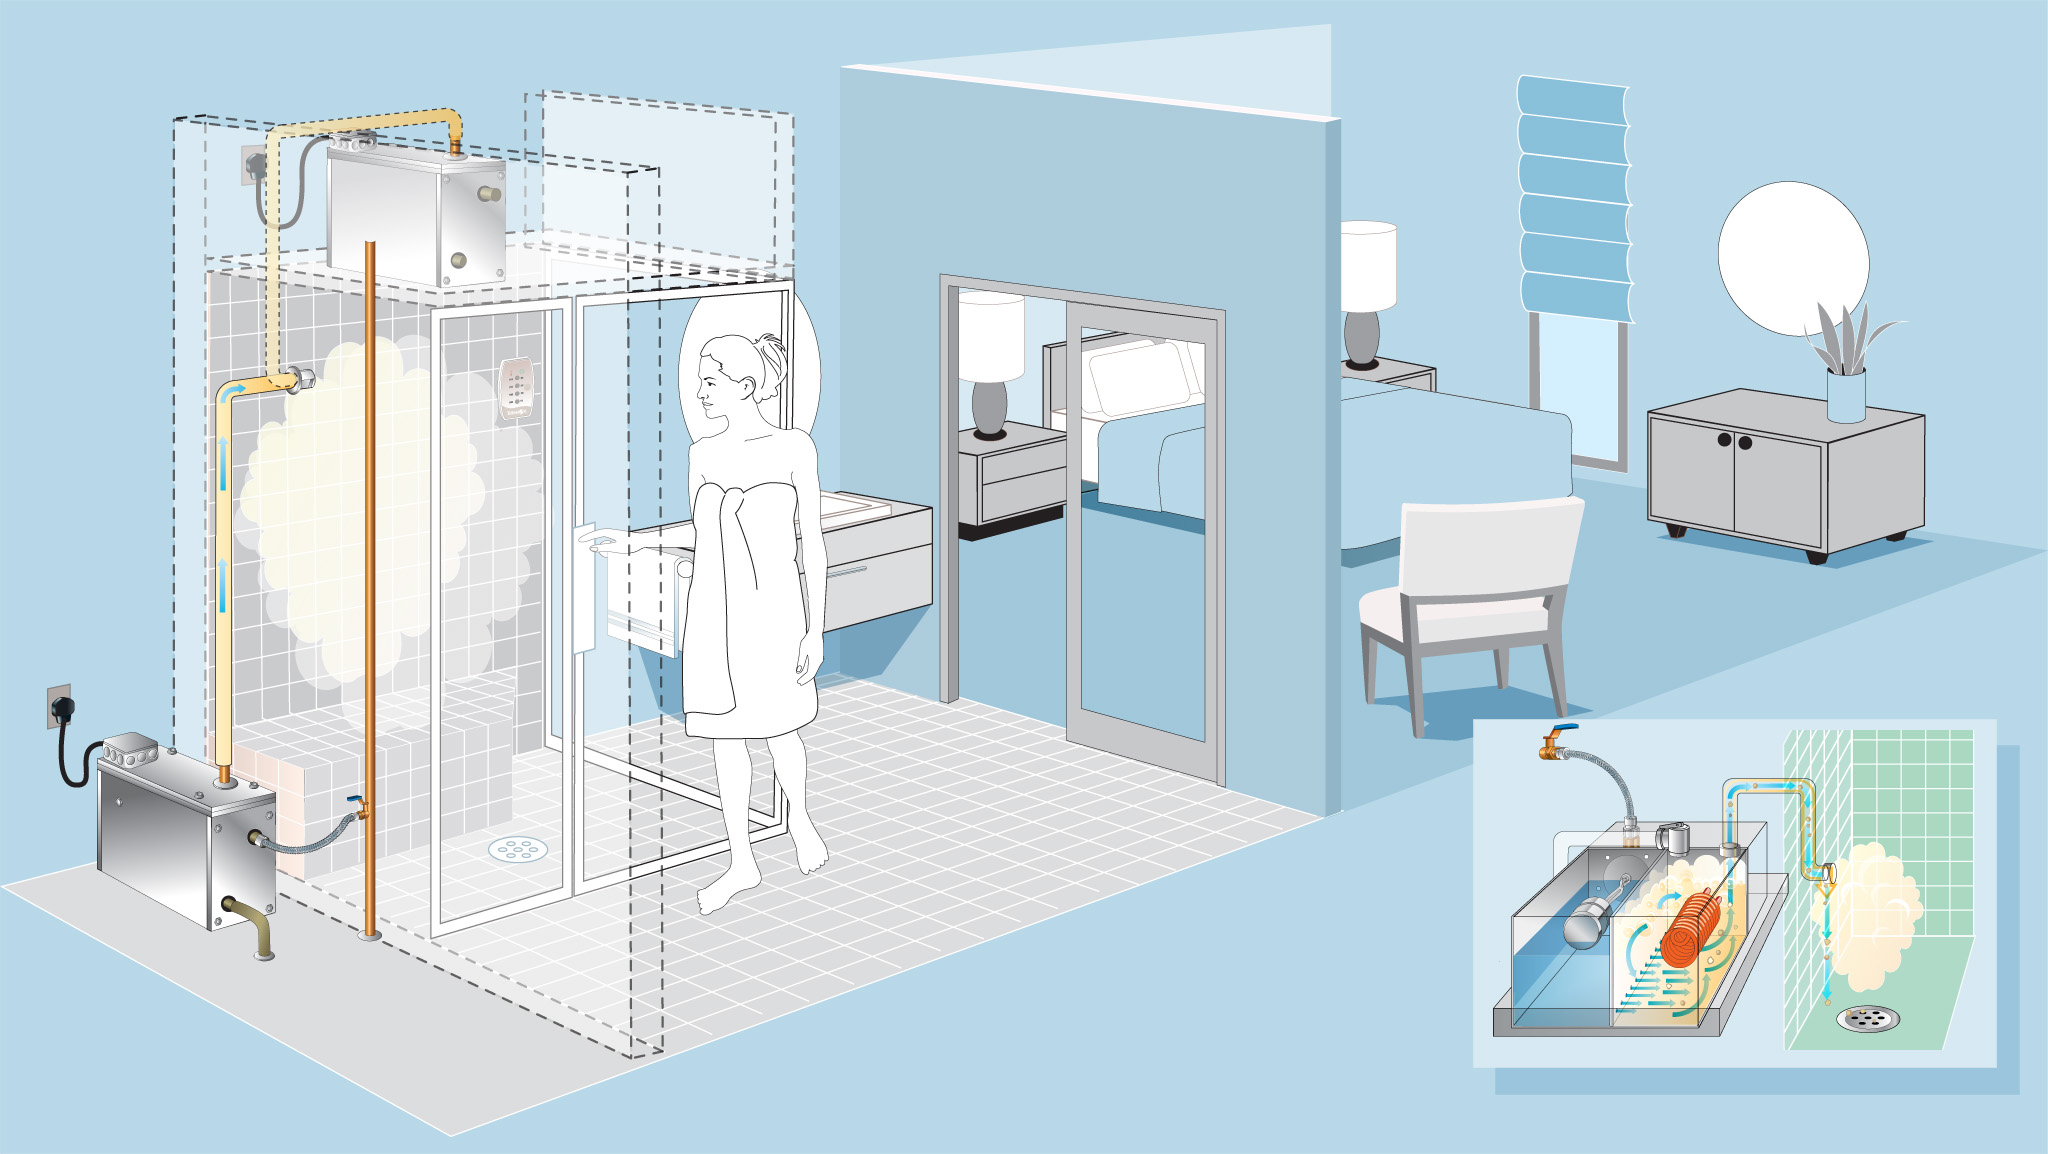 Technical illustration of steam room.